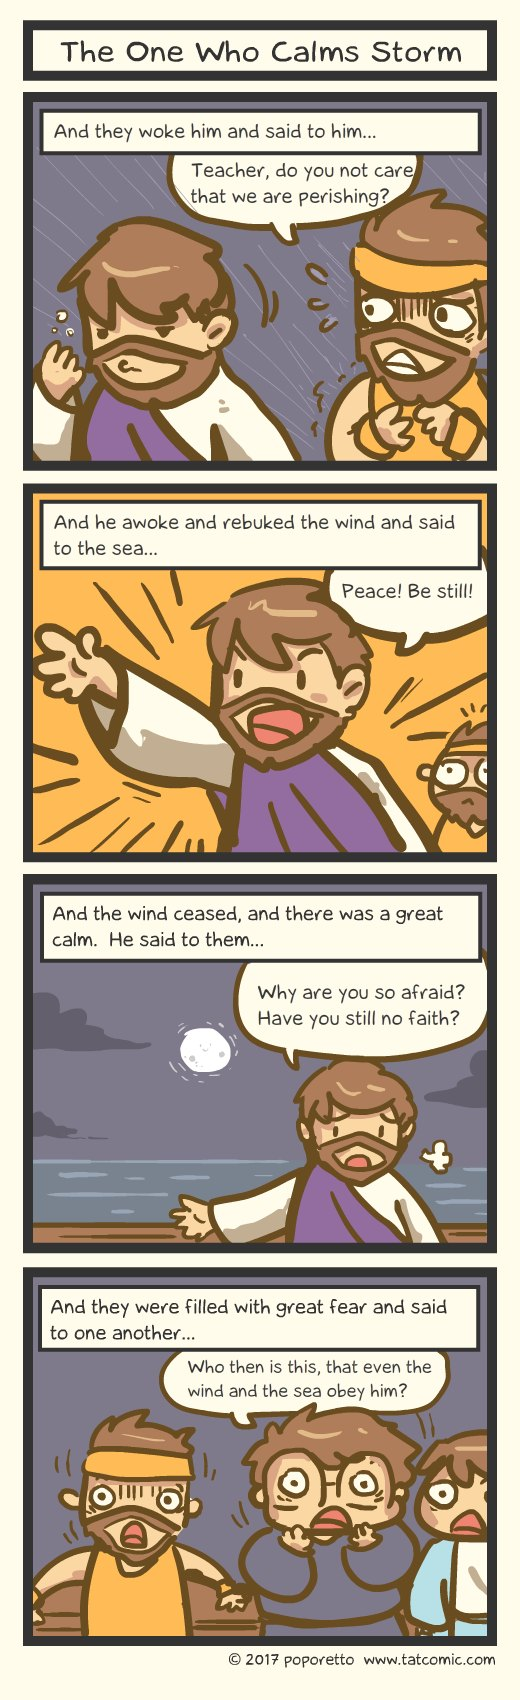 42-Gospel-Of-Mark-Christian-comic-strip-gospel-comic-jesus-and-the-calming-of-the-storm